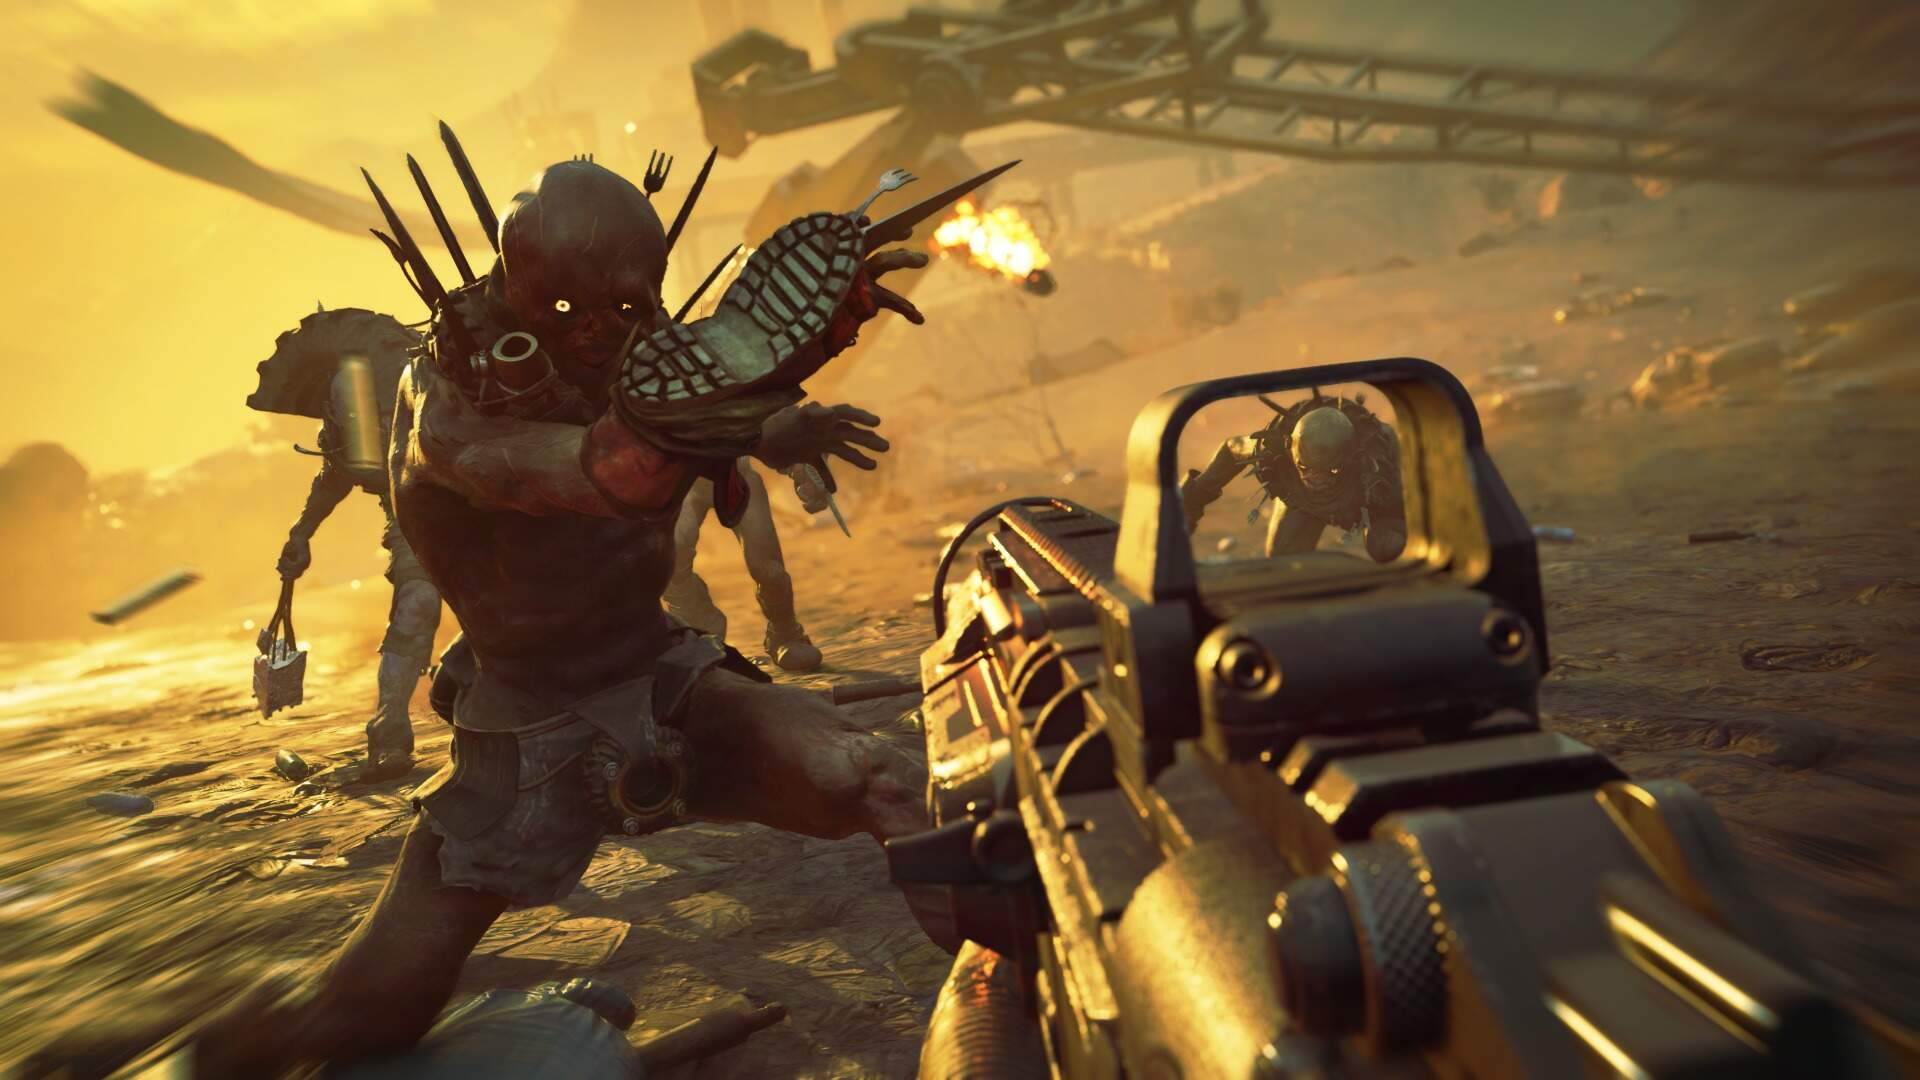 Rage 2 is Bringing Back Cheat Codes, Including One That Adds Commentary From the NBA Jam Announcer